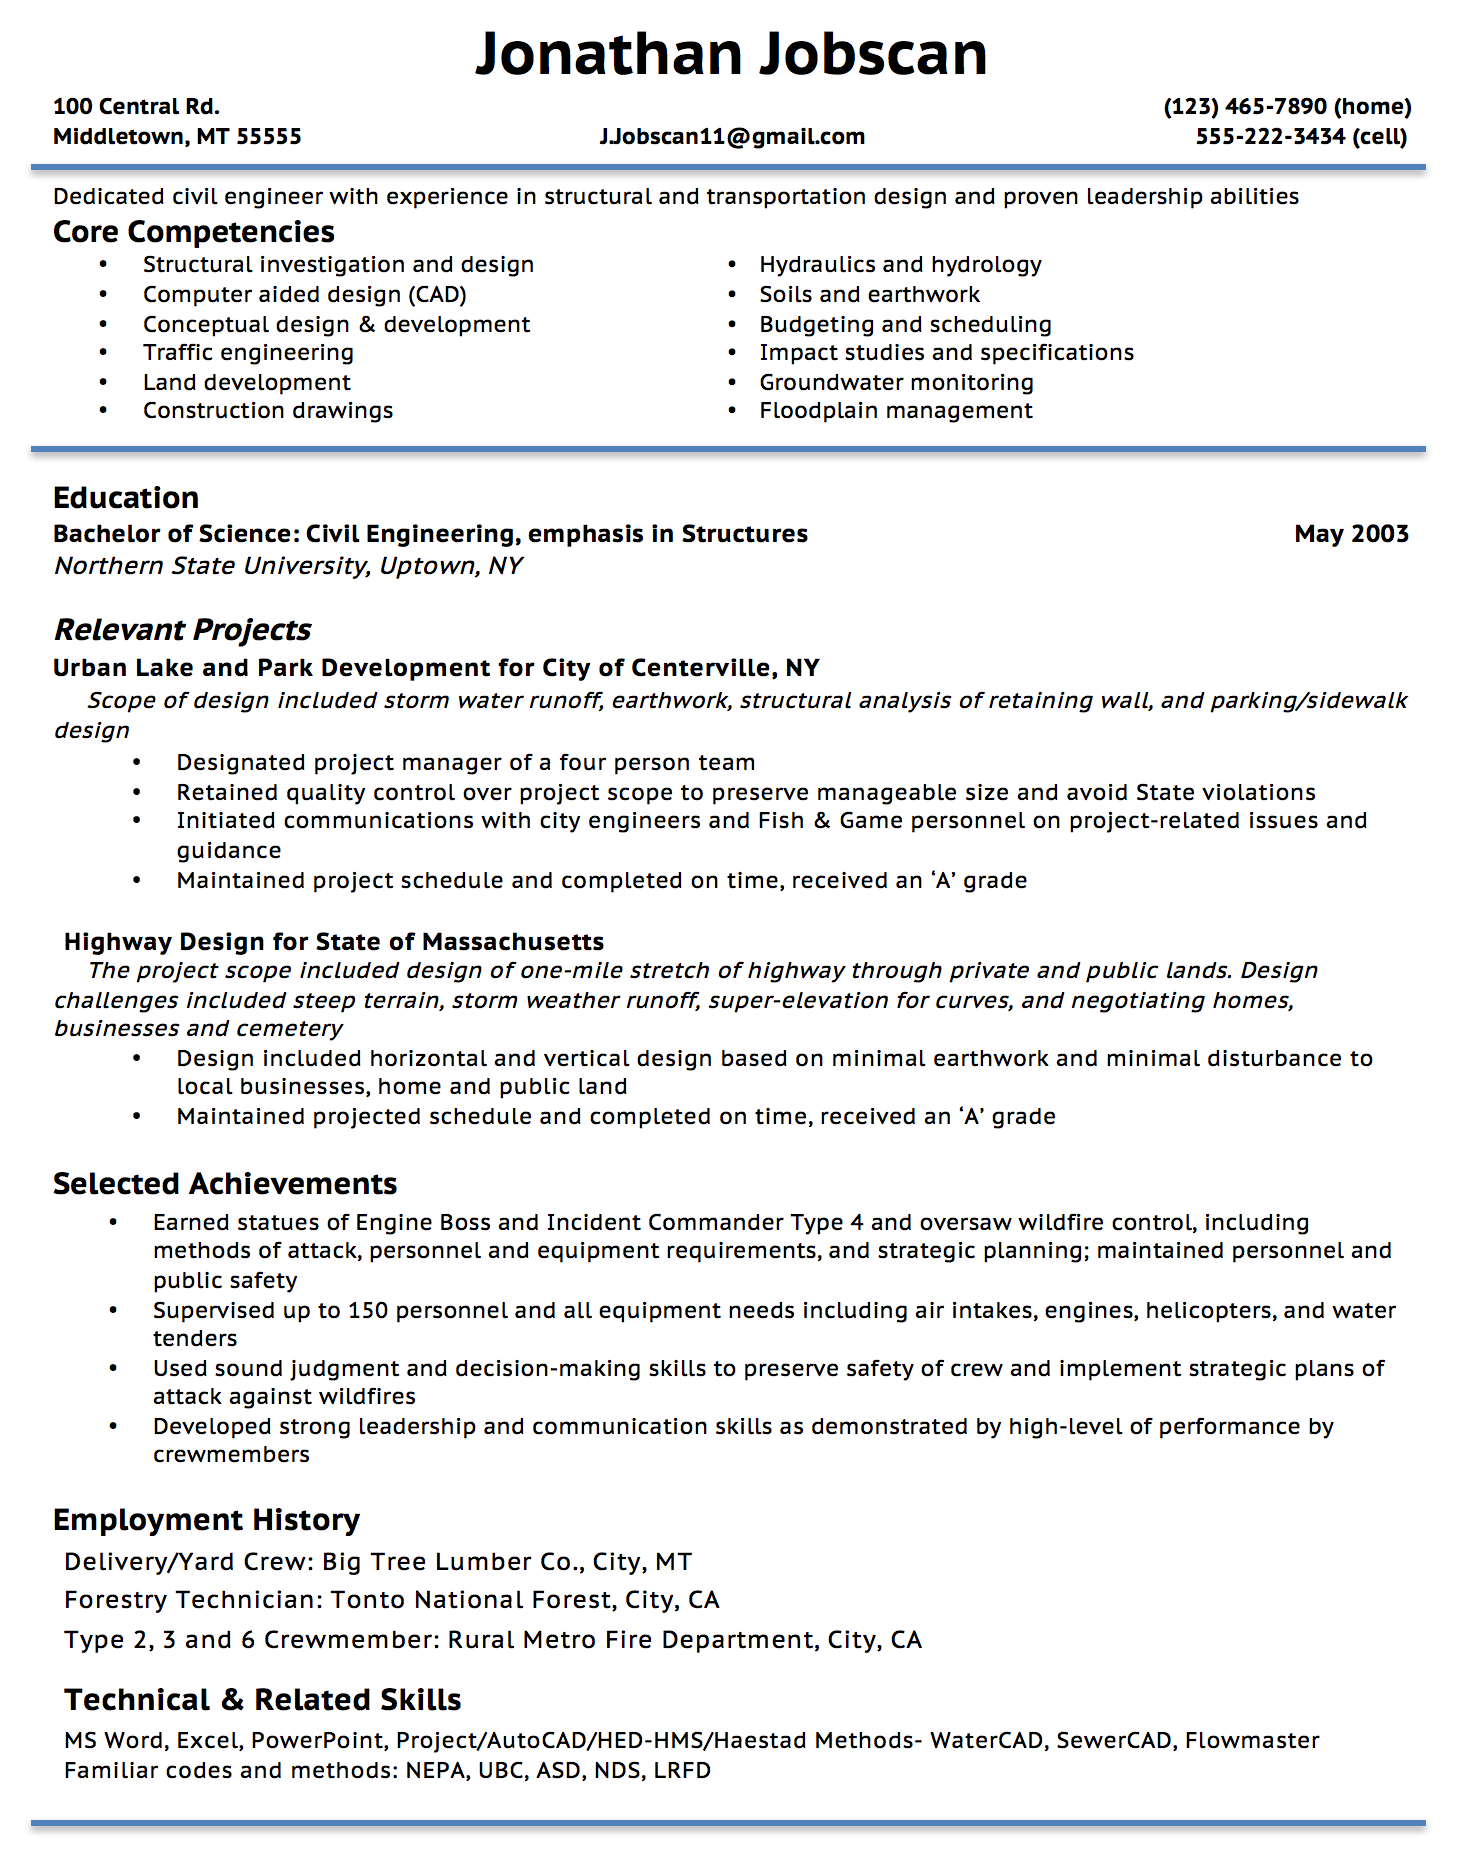 Opposenewapstandardsus  Splendid Resume Writing Guide  Jobscan With Magnificent Example Of A Functional Resume Format With Nice Salesman Resume Also How To Write A High School Resume In Addition Make A Free Resume Online And Updating Resume As Well As Post Resume On Linkedin Additionally Federal Government Resume From Jobscanco With Opposenewapstandardsus  Magnificent Resume Writing Guide  Jobscan With Nice Example Of A Functional Resume Format And Splendid Salesman Resume Also How To Write A High School Resume In Addition Make A Free Resume Online From Jobscanco